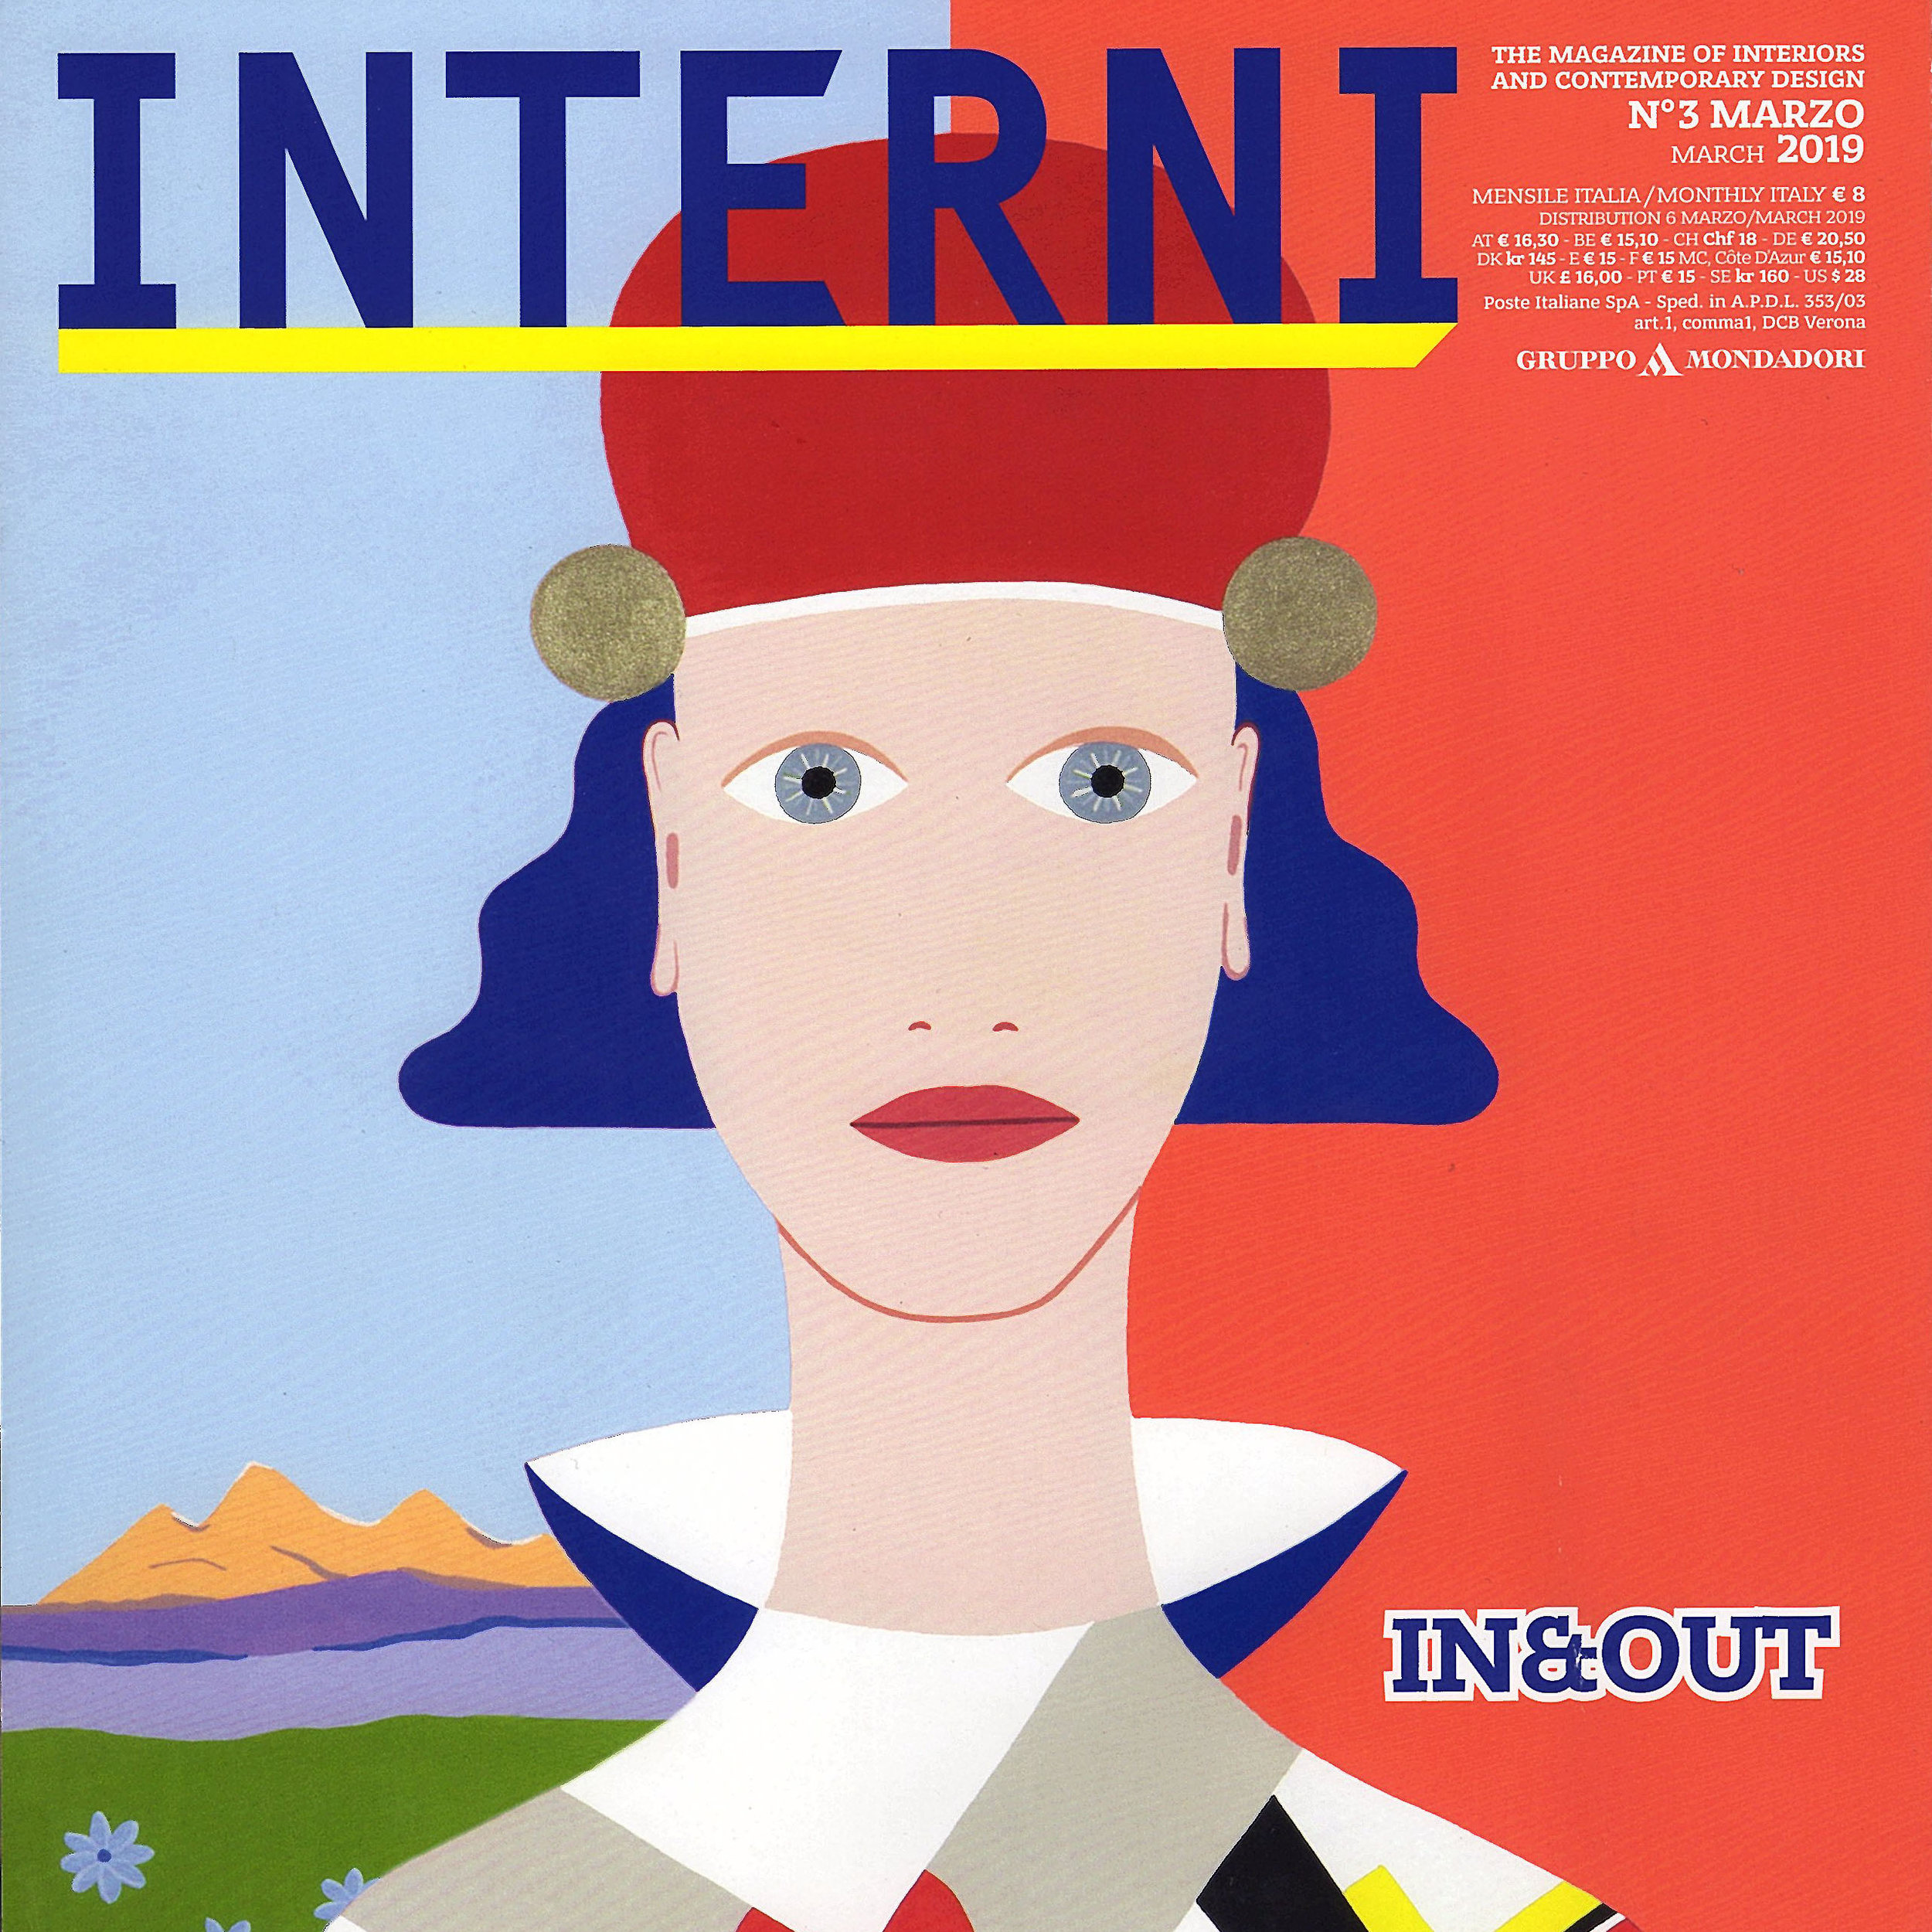 INTERNI - March